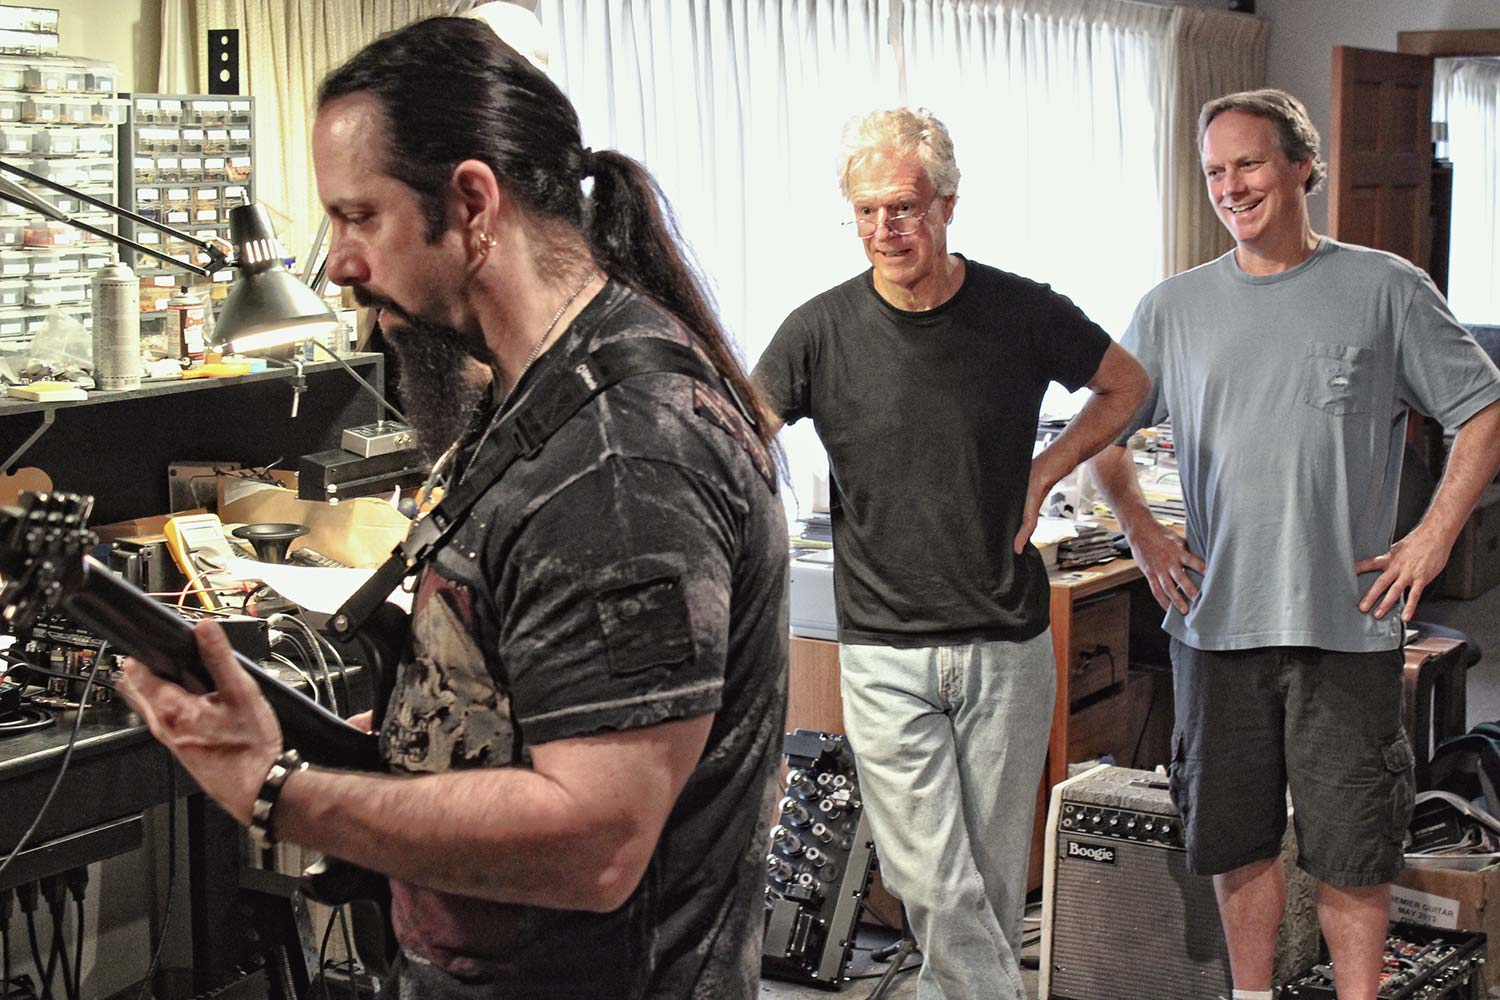 John Petrucci Playing the Mark Five: 25 Prototype with Randall Smith and Doug West